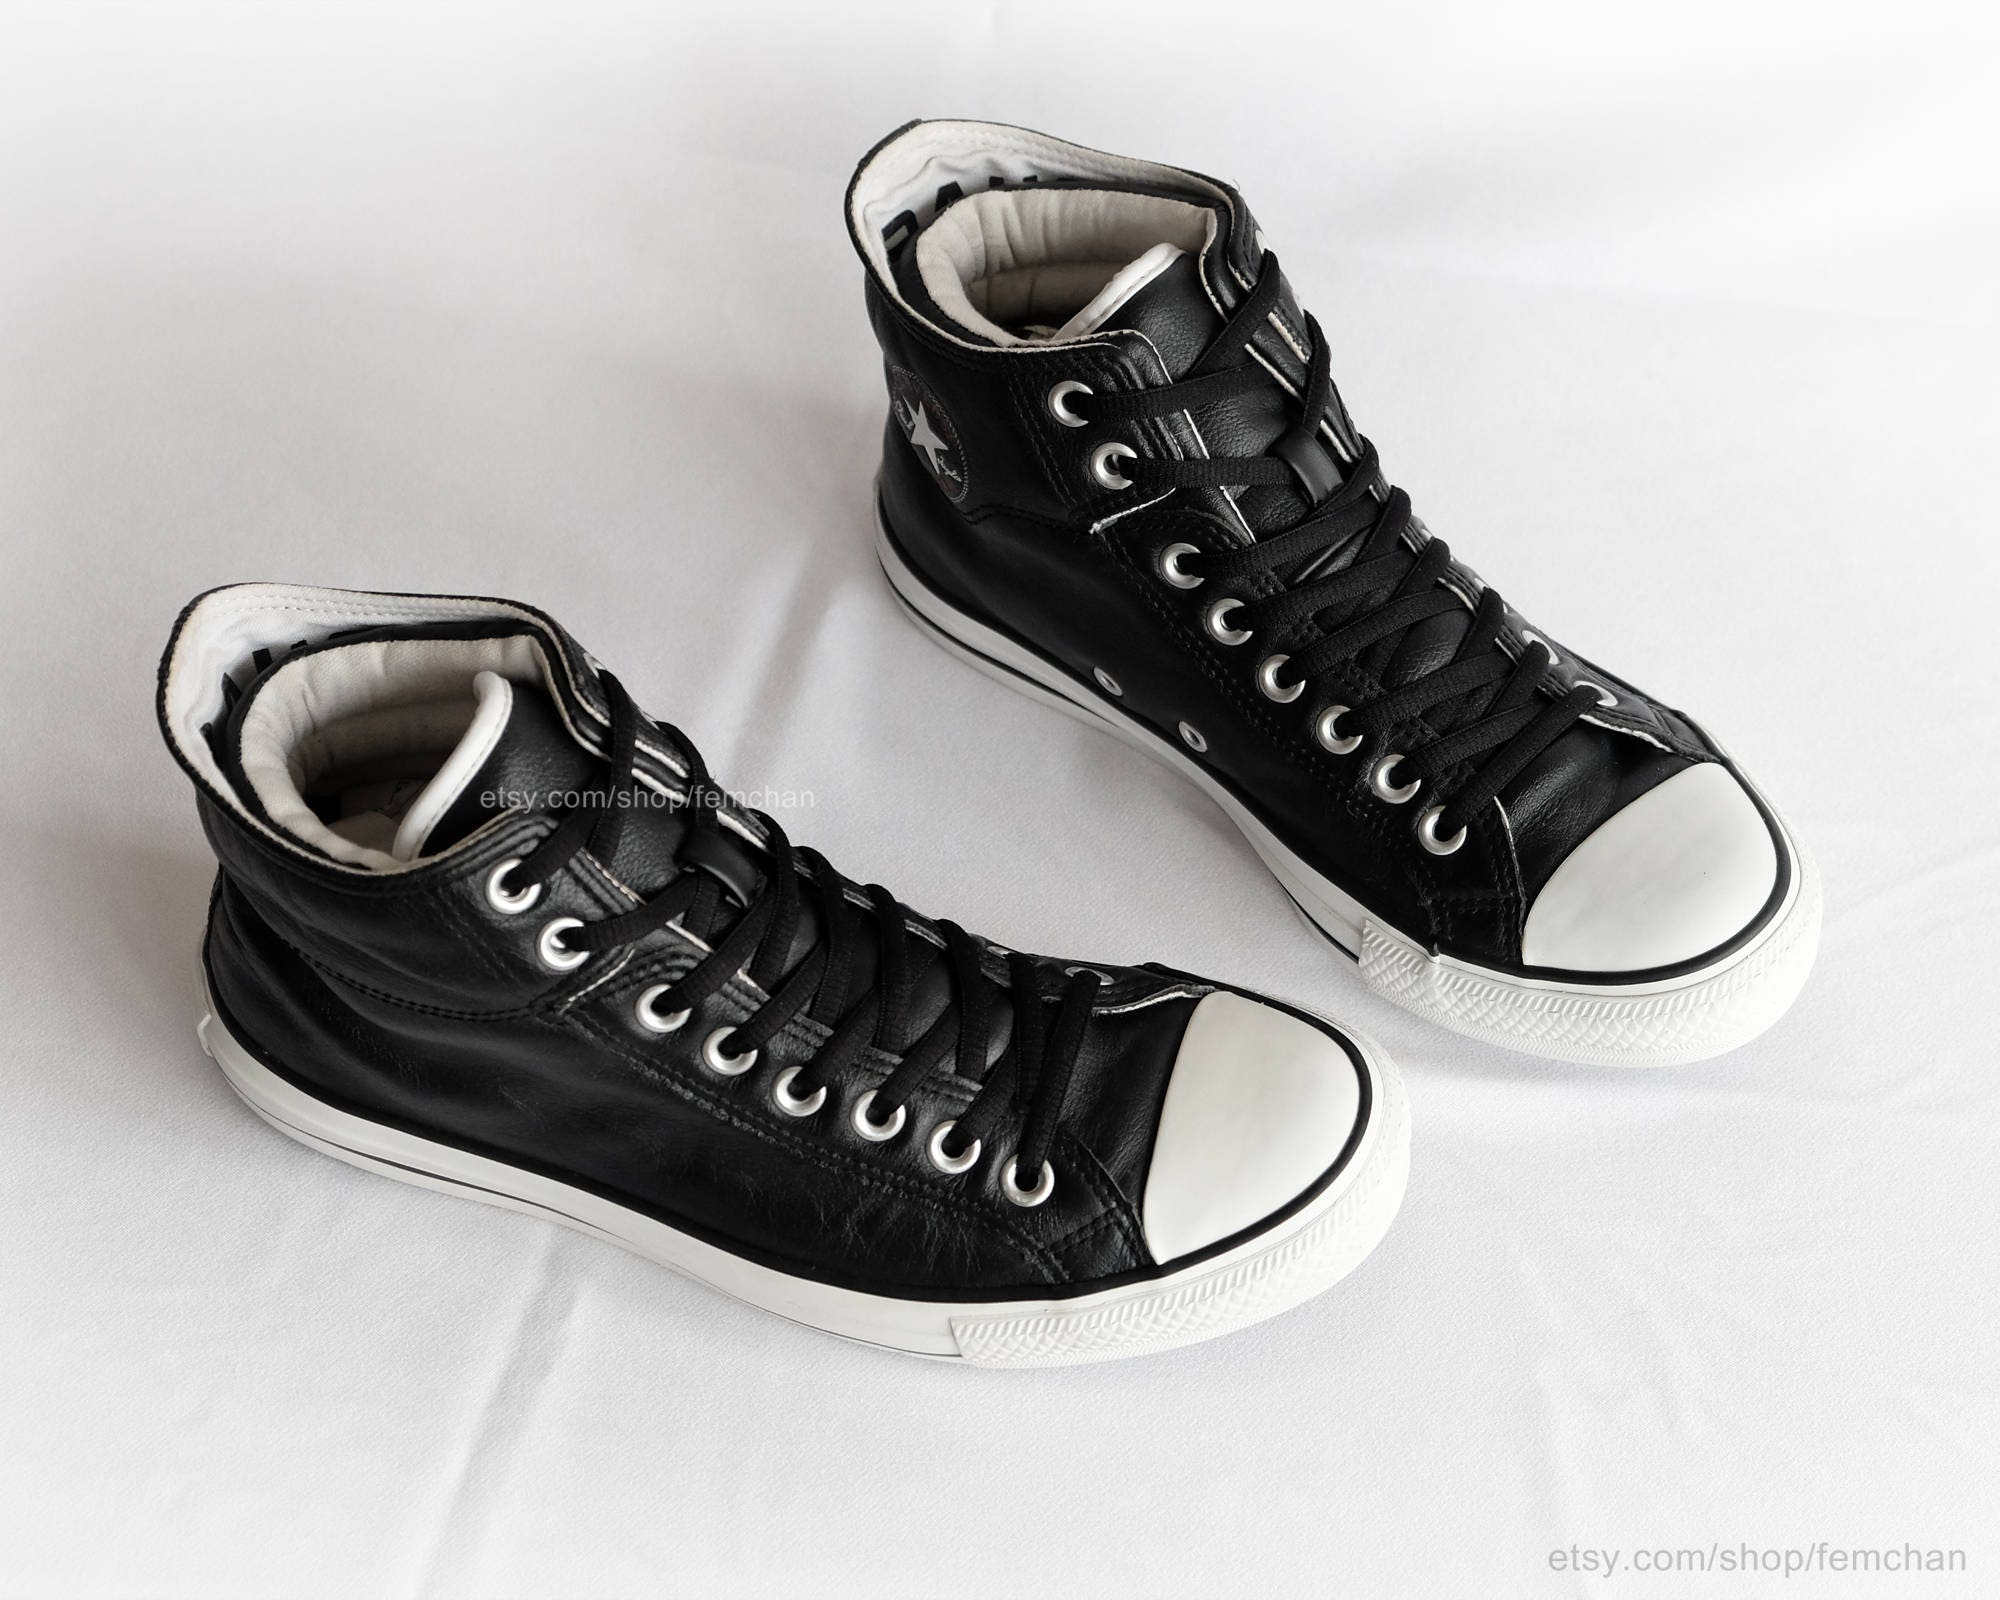 e381085086a7 Black leather Converse All Stars vintage sneakers fold over